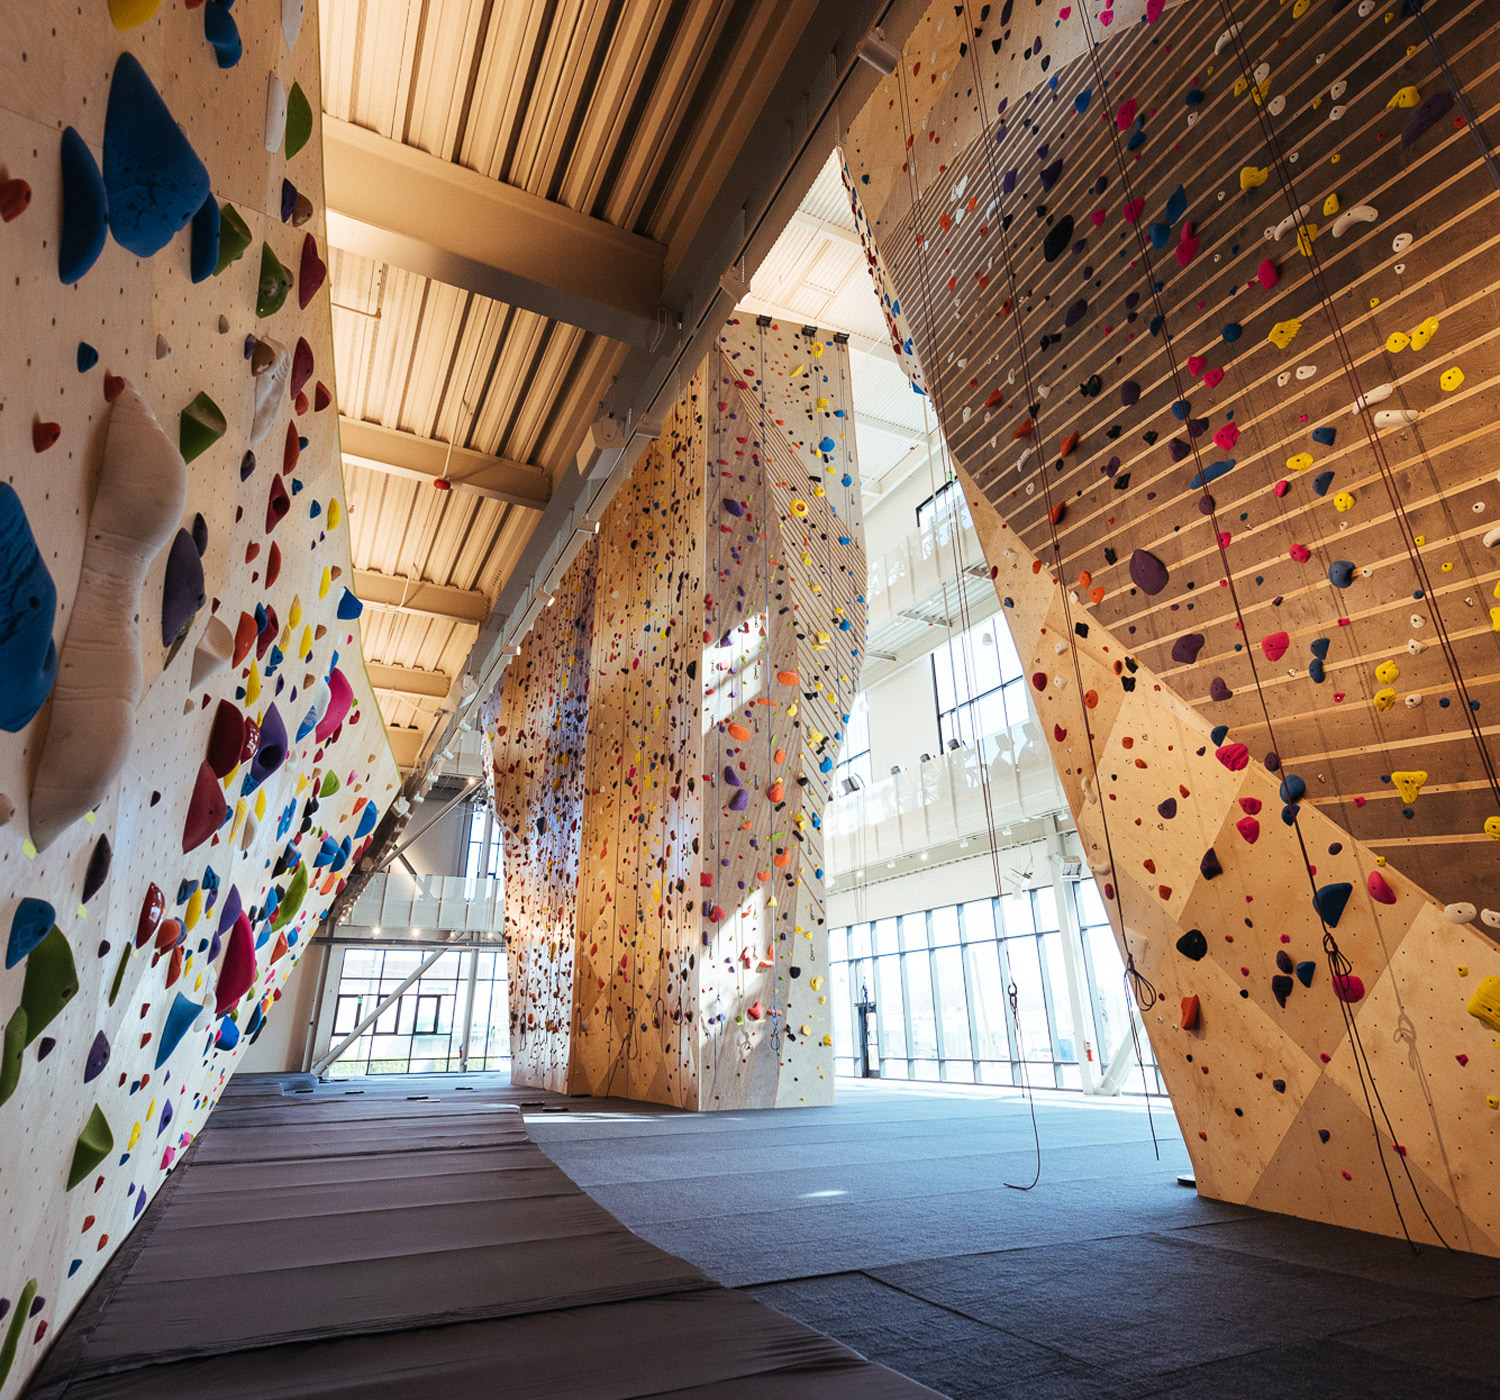 Habit-Climbing-Holds-Route-Flooring-Bouldering-Pads.